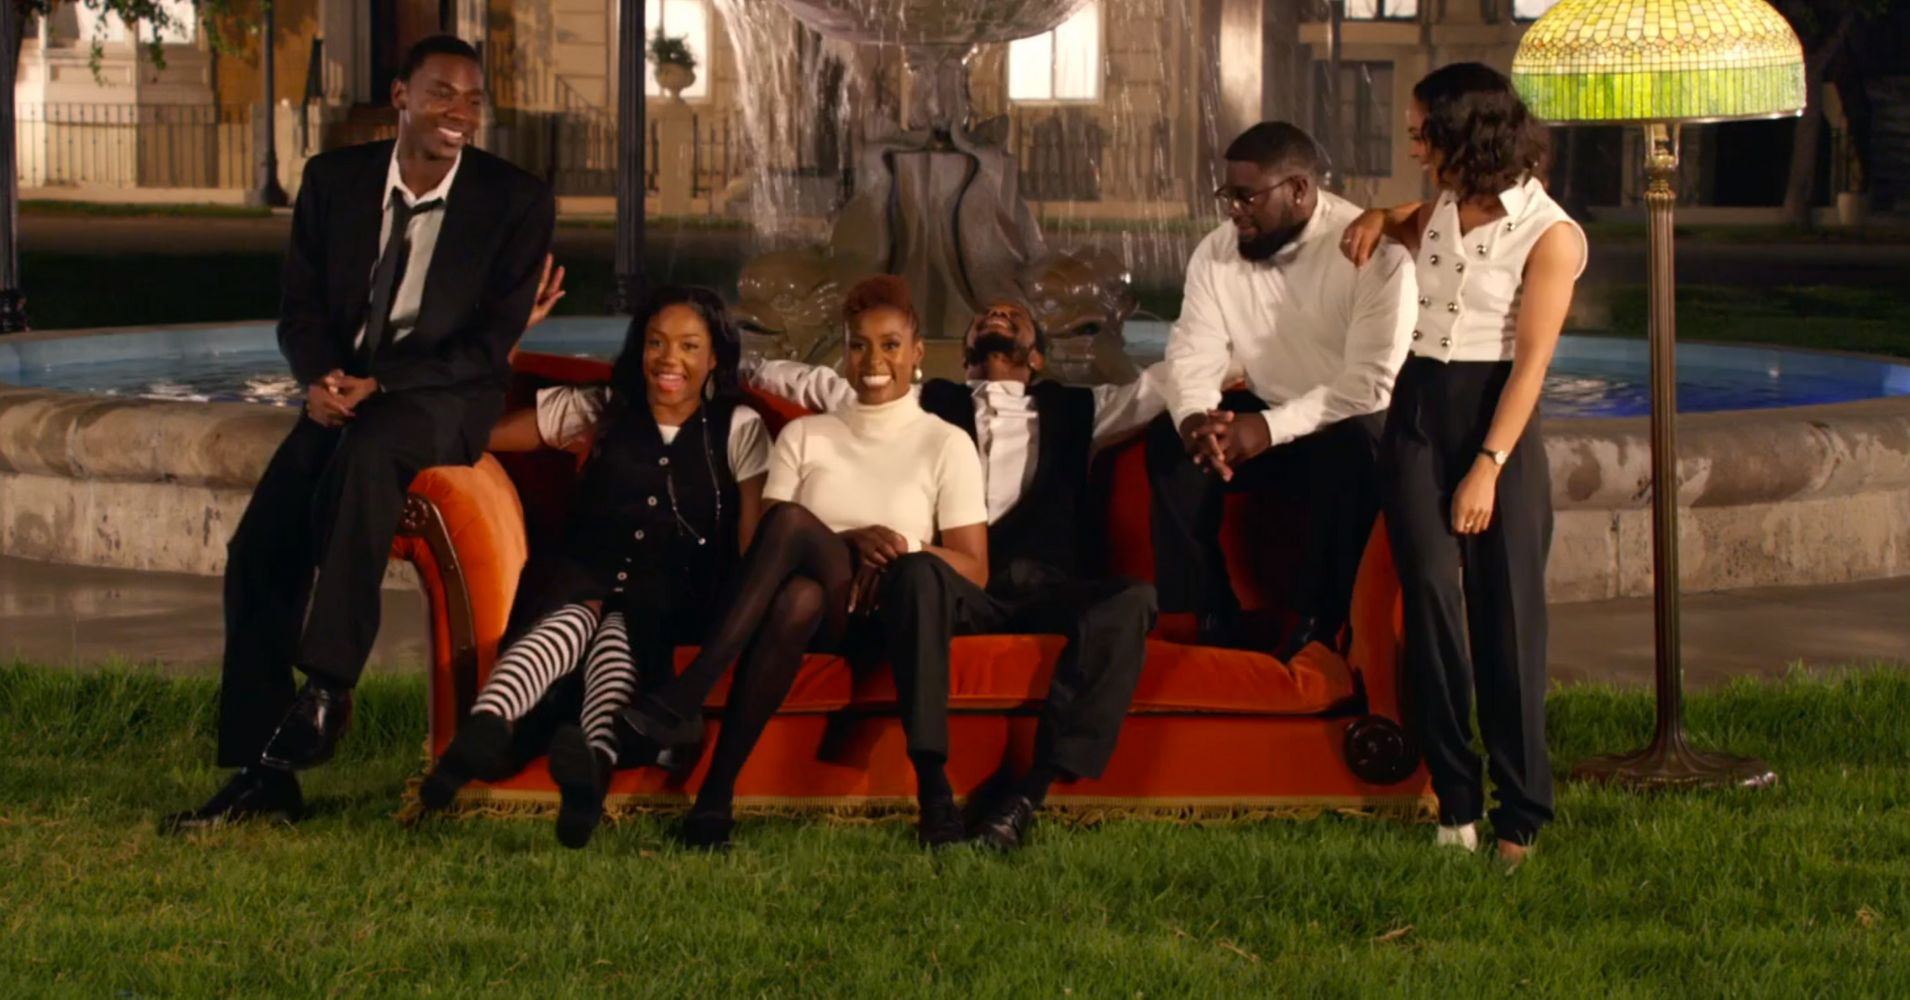 Jay-Z's Black 'Friends' Remake Is A Powerful Comment On Hollywood's Diversity Problem